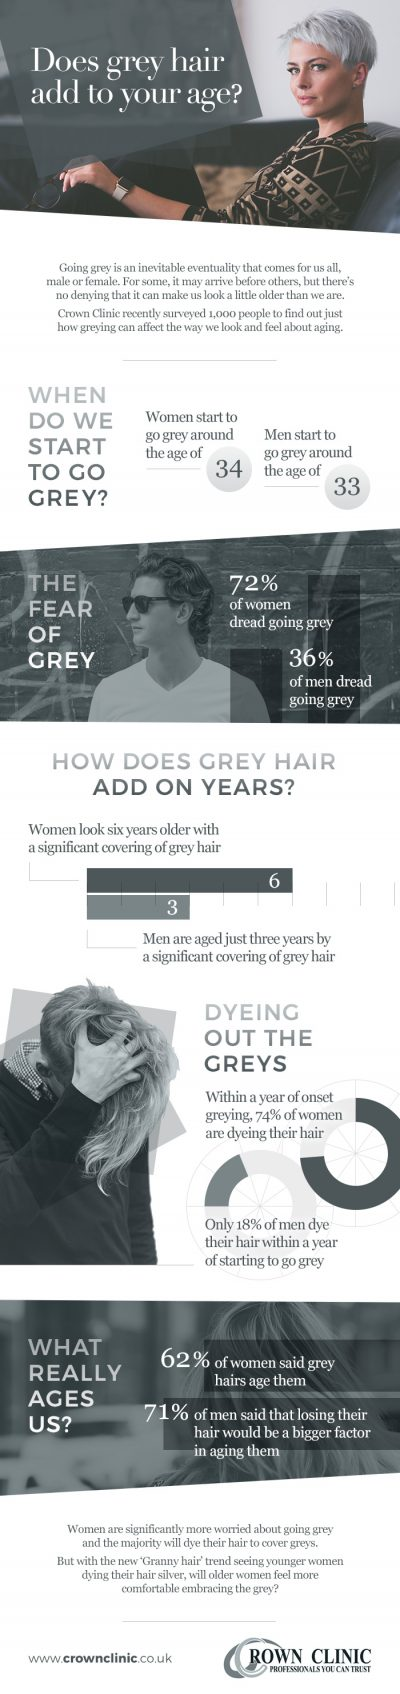 Grey Hair Infographic